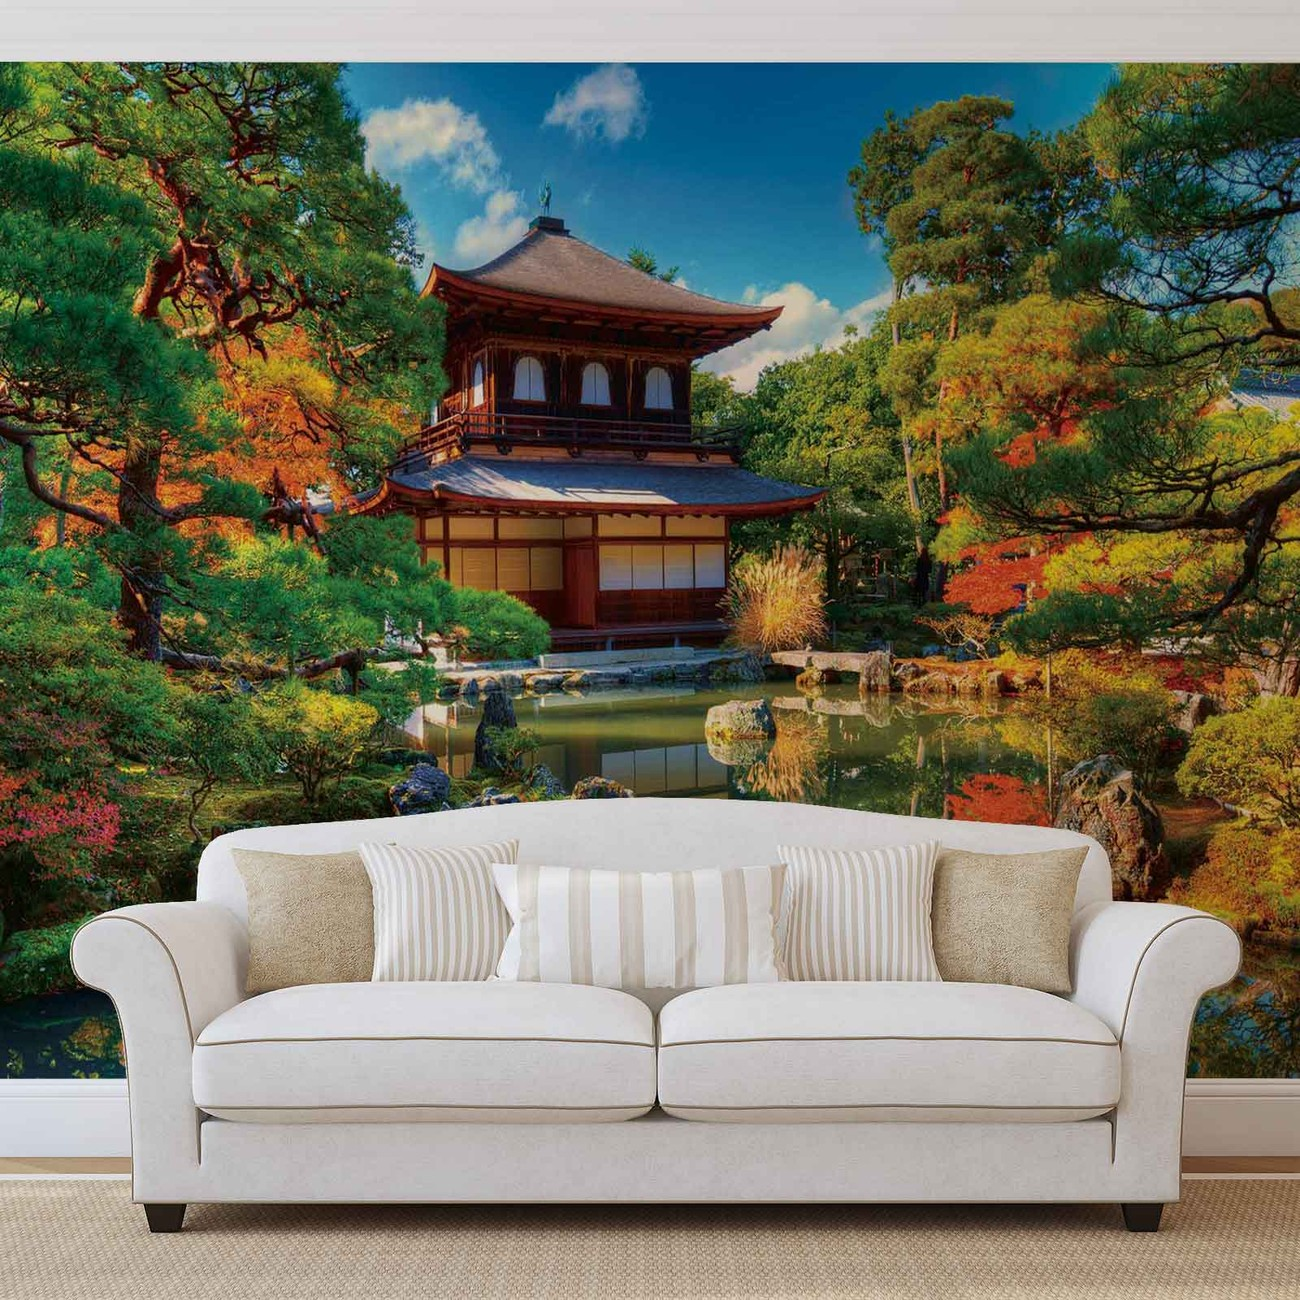 temple zen japan culture wall paper mural buy at europosters. Black Bedroom Furniture Sets. Home Design Ideas